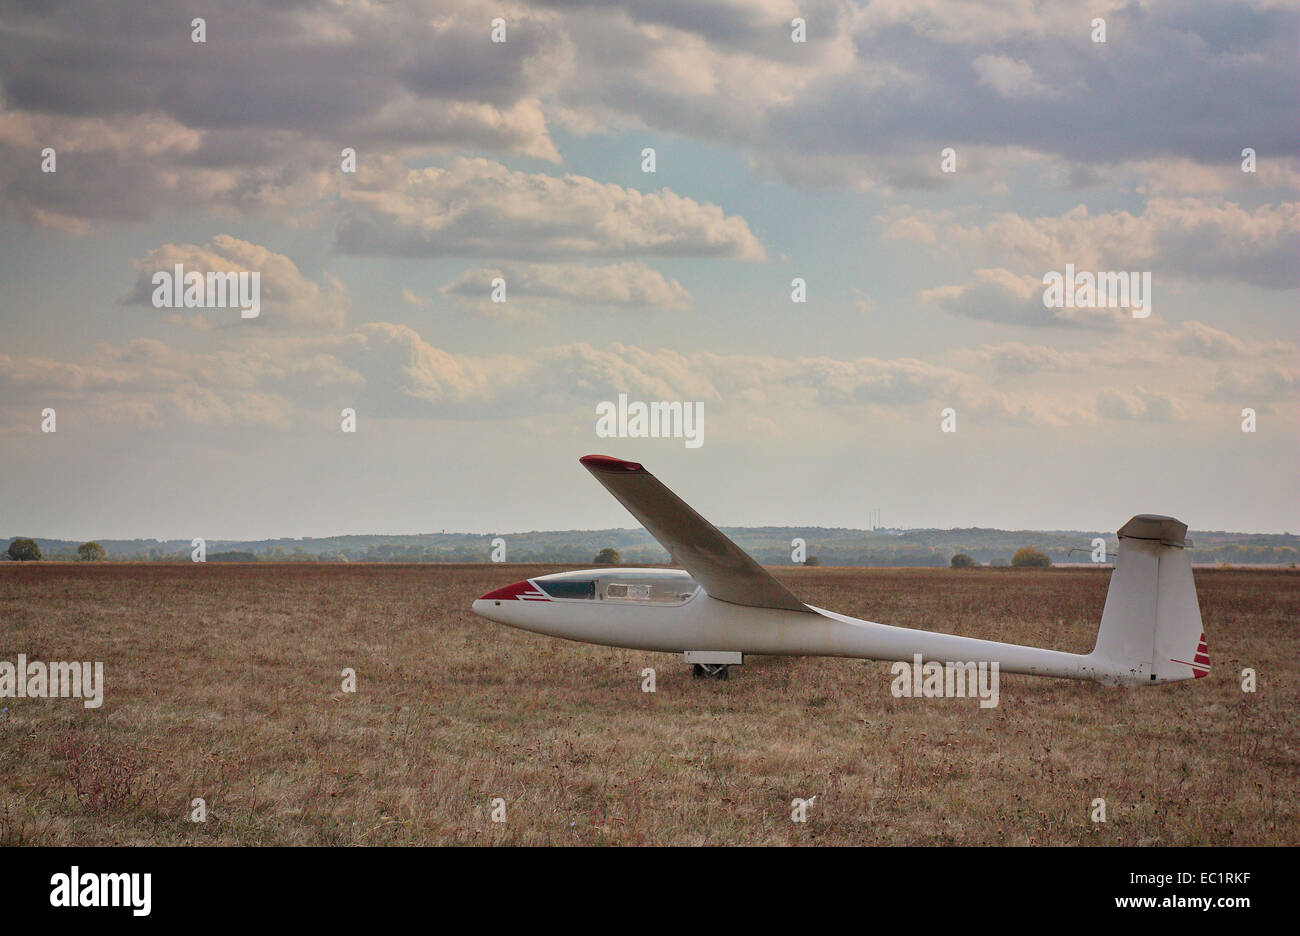 The old glider against the cloudy sky - Stock Image